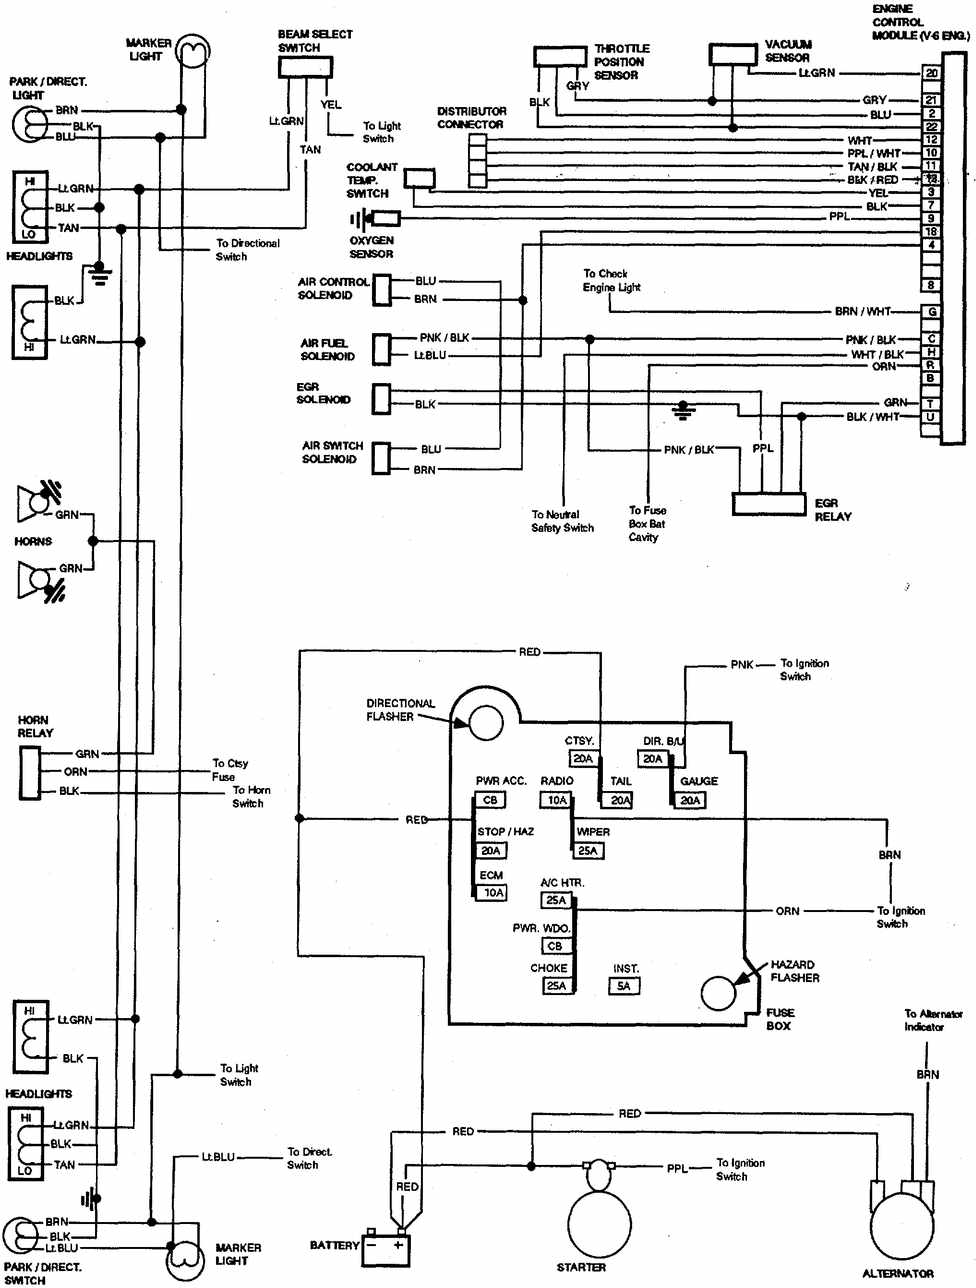 chevrolet v8 trucks 1981 1987 electrical wiring diagram rover 75 engine fuse box rover 75 engine [ 976 x 1288 Pixel ]